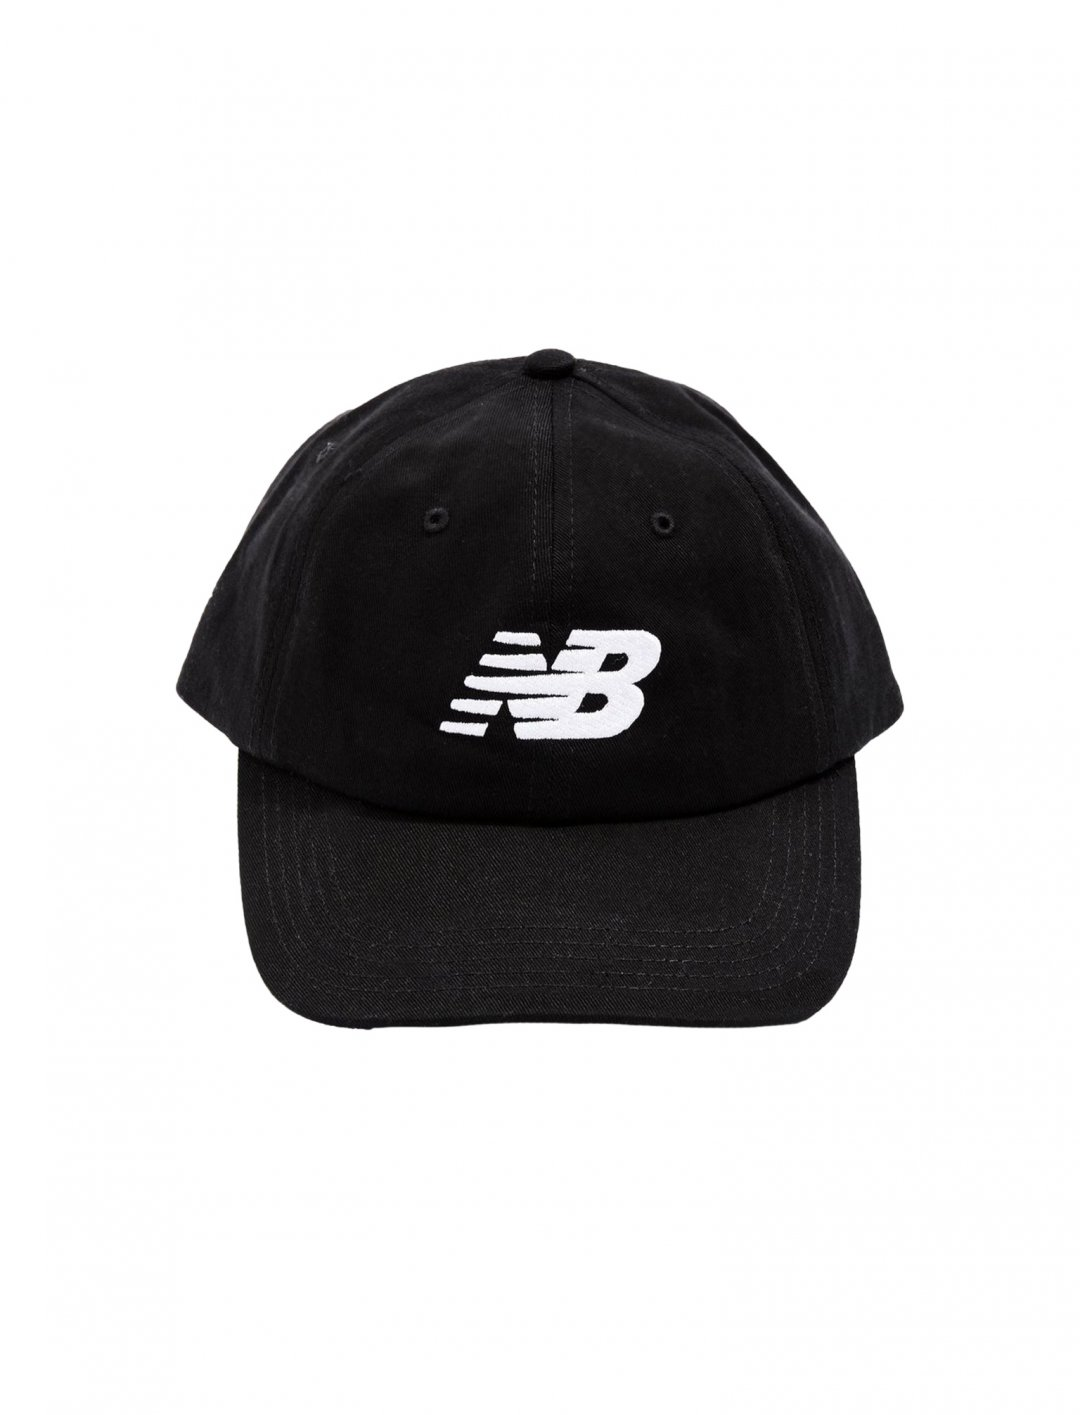 "New Balance Black Cap {""id"":16,""product_section_id"":1,""name"":""Accessories"",""order"":15} New Balance"